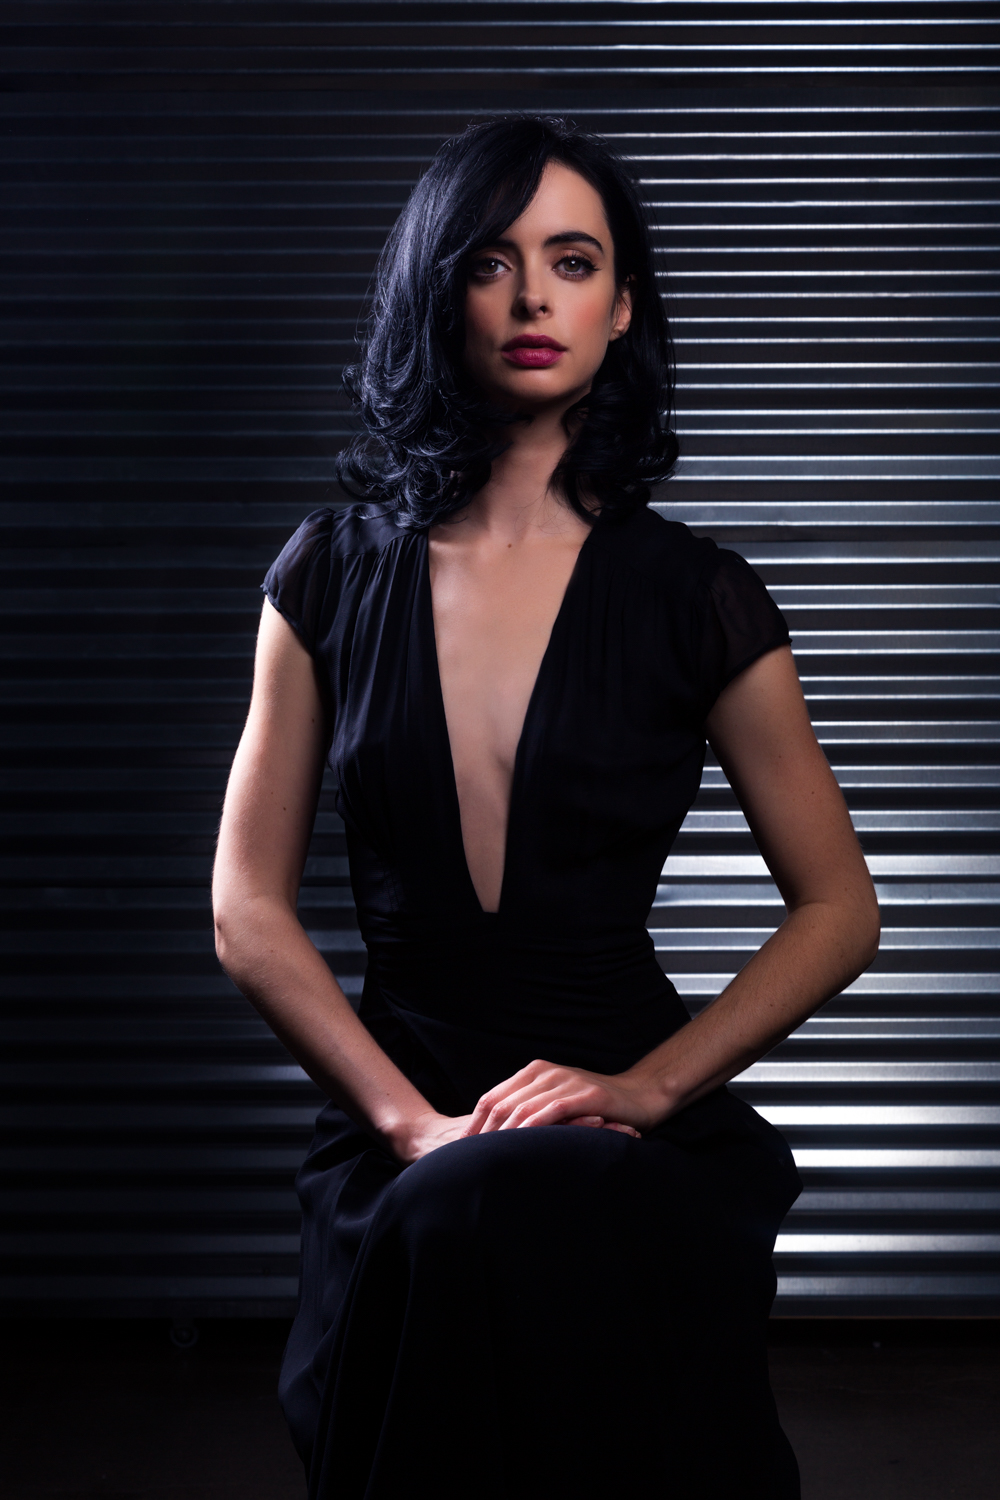 Backstage_Krysten Ritter_10_28_2014-109-Edit V2.jpg